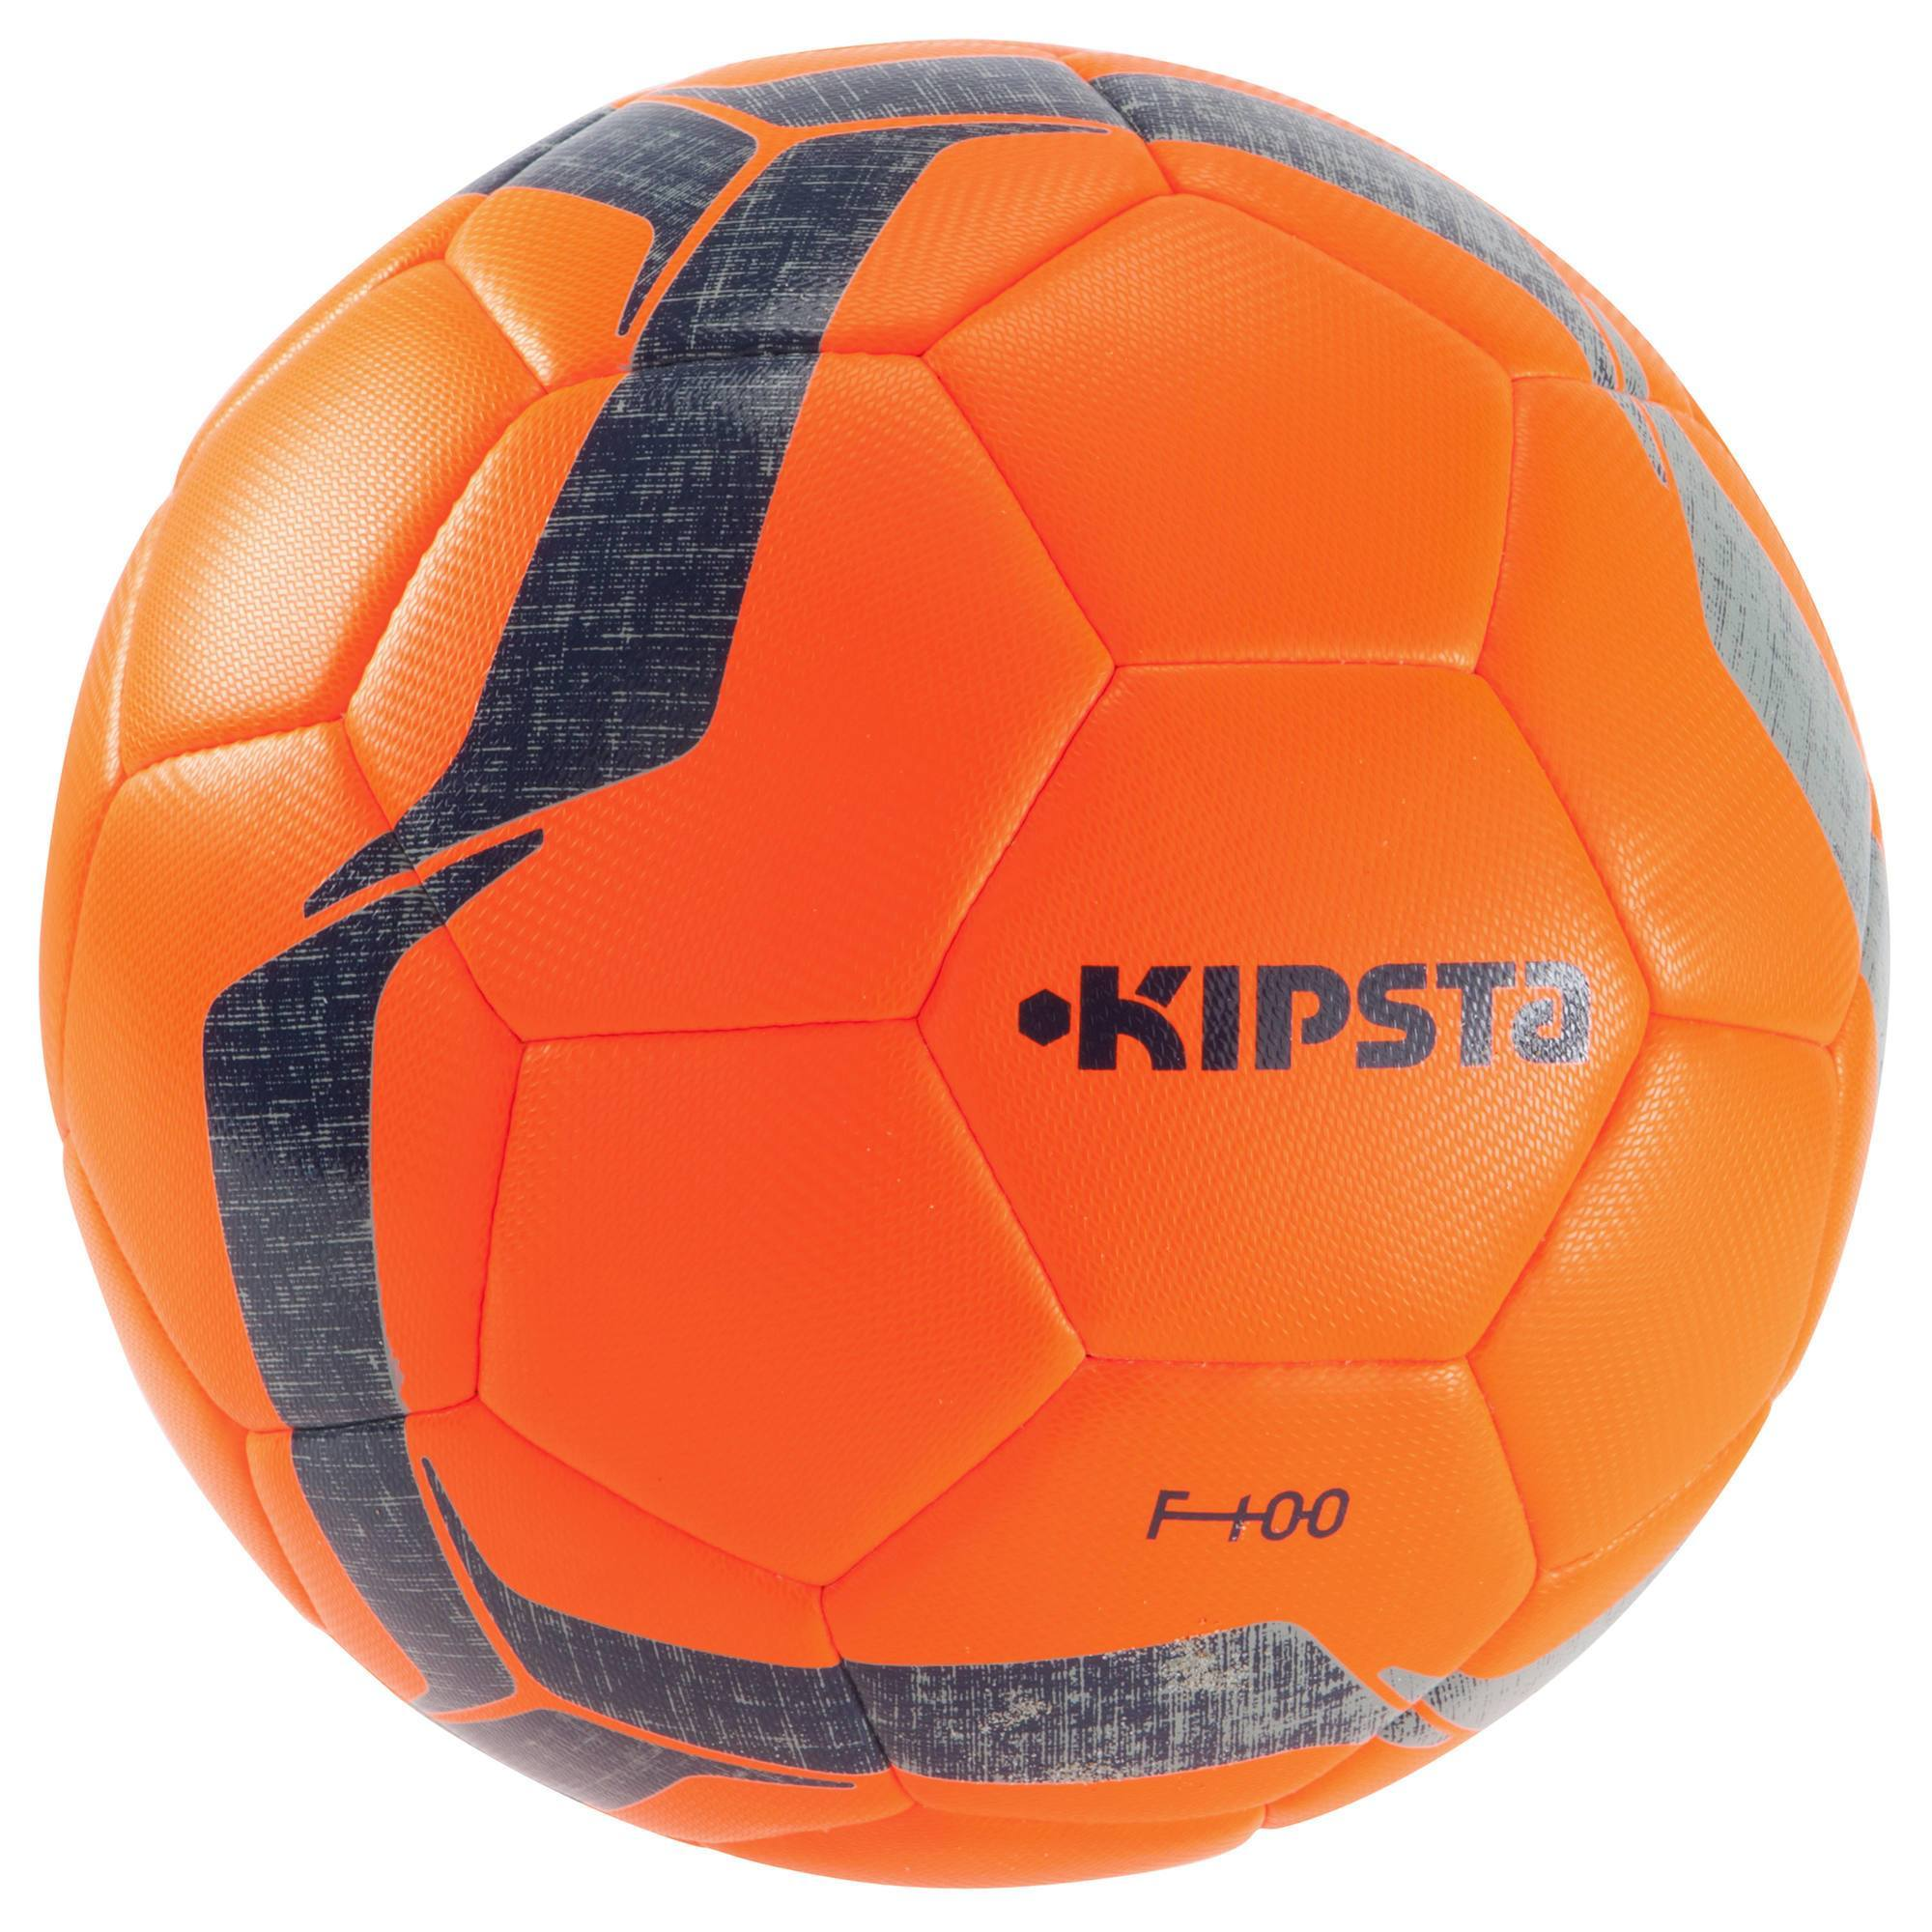 Ballon de football F100 Hybride taille 5 orange